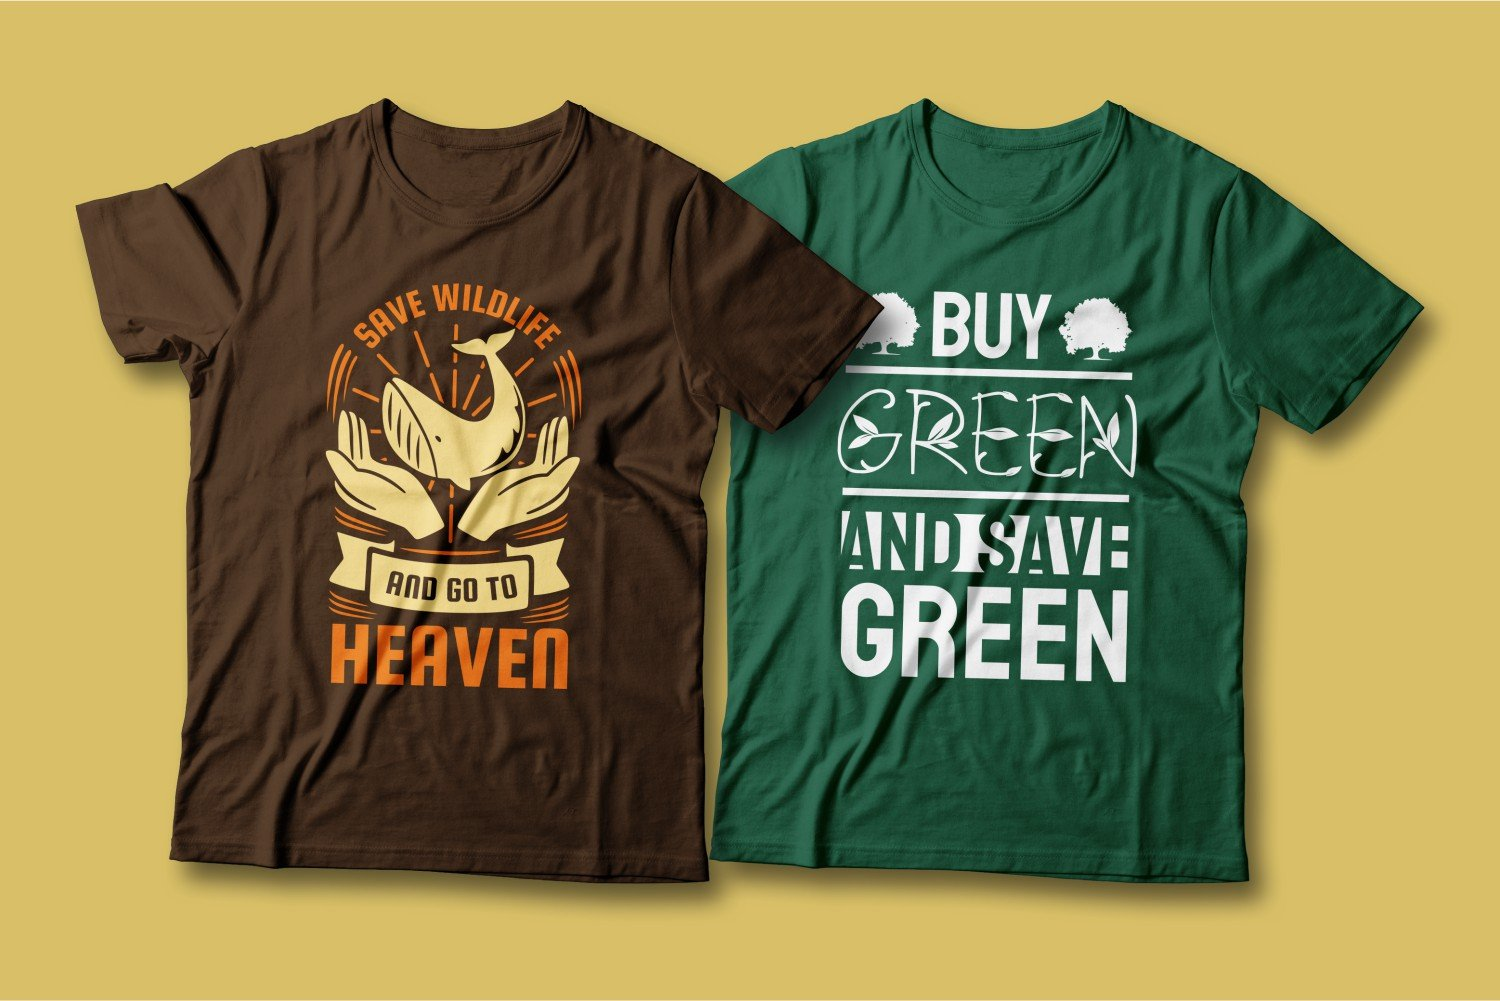 Two T-shirts - one brown, the other green; both call for wildlife conservation.